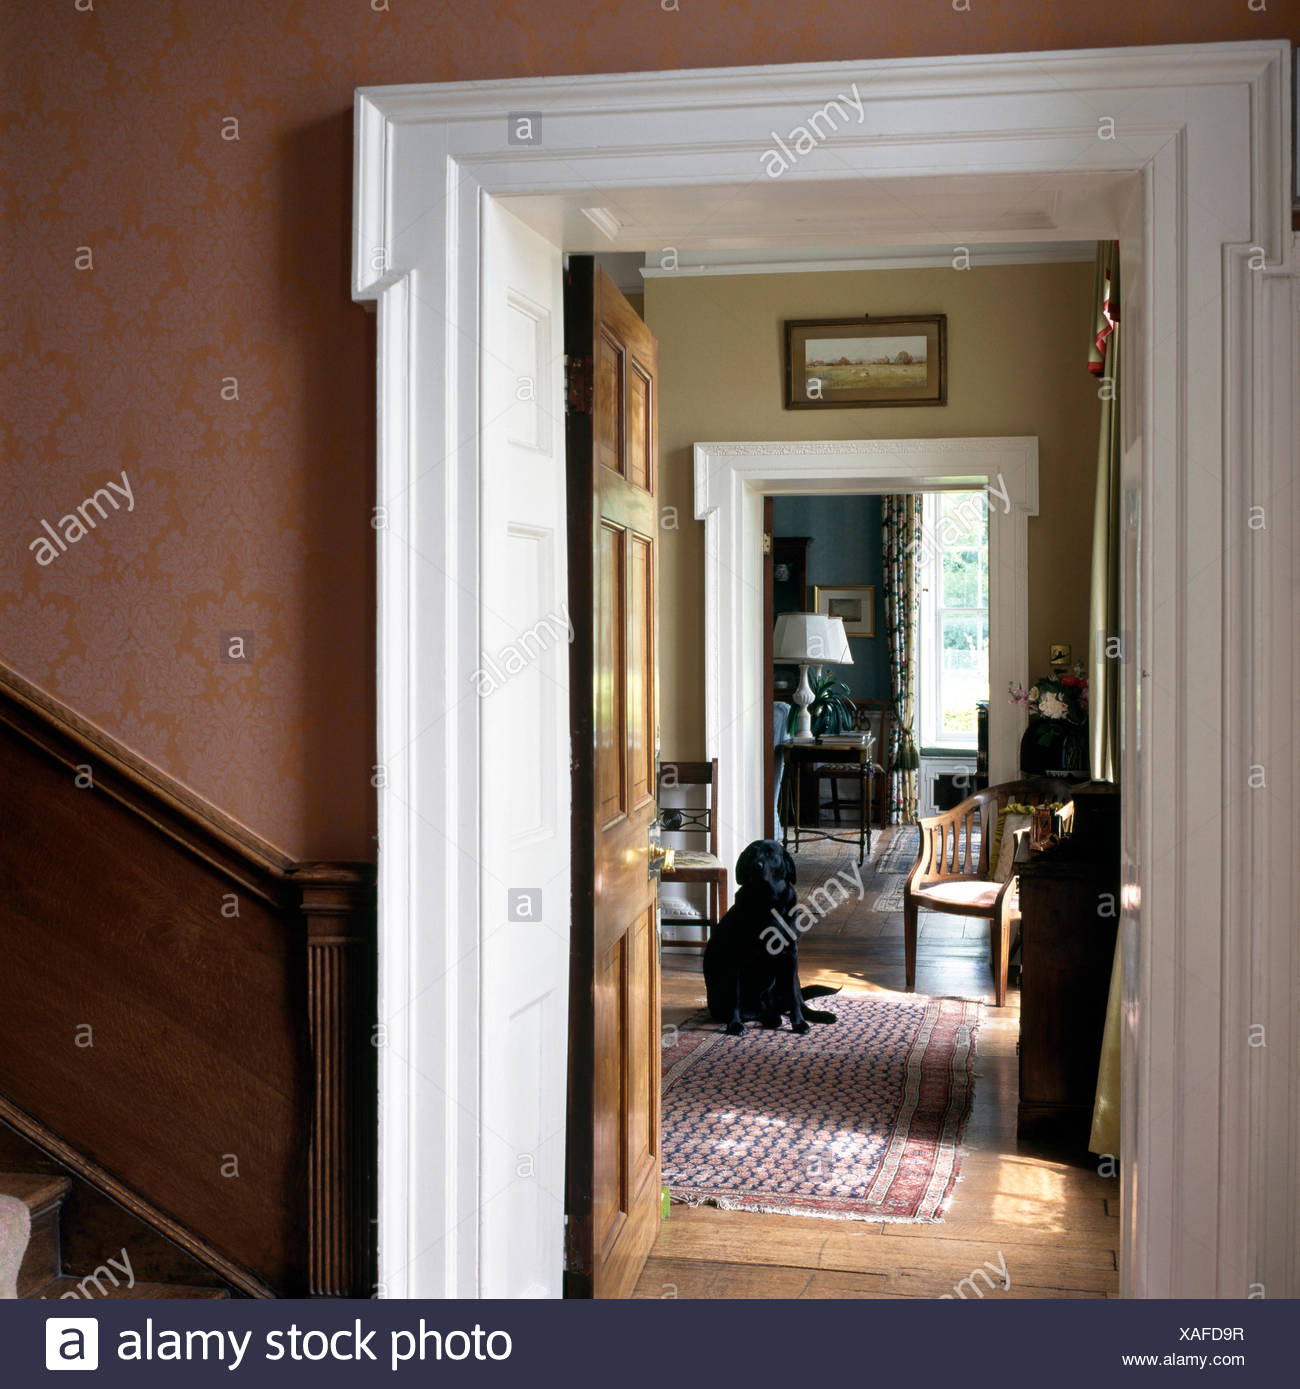 open door drawing clipart traditional country hall with view through open door of black labrador dog sitting in drawing room